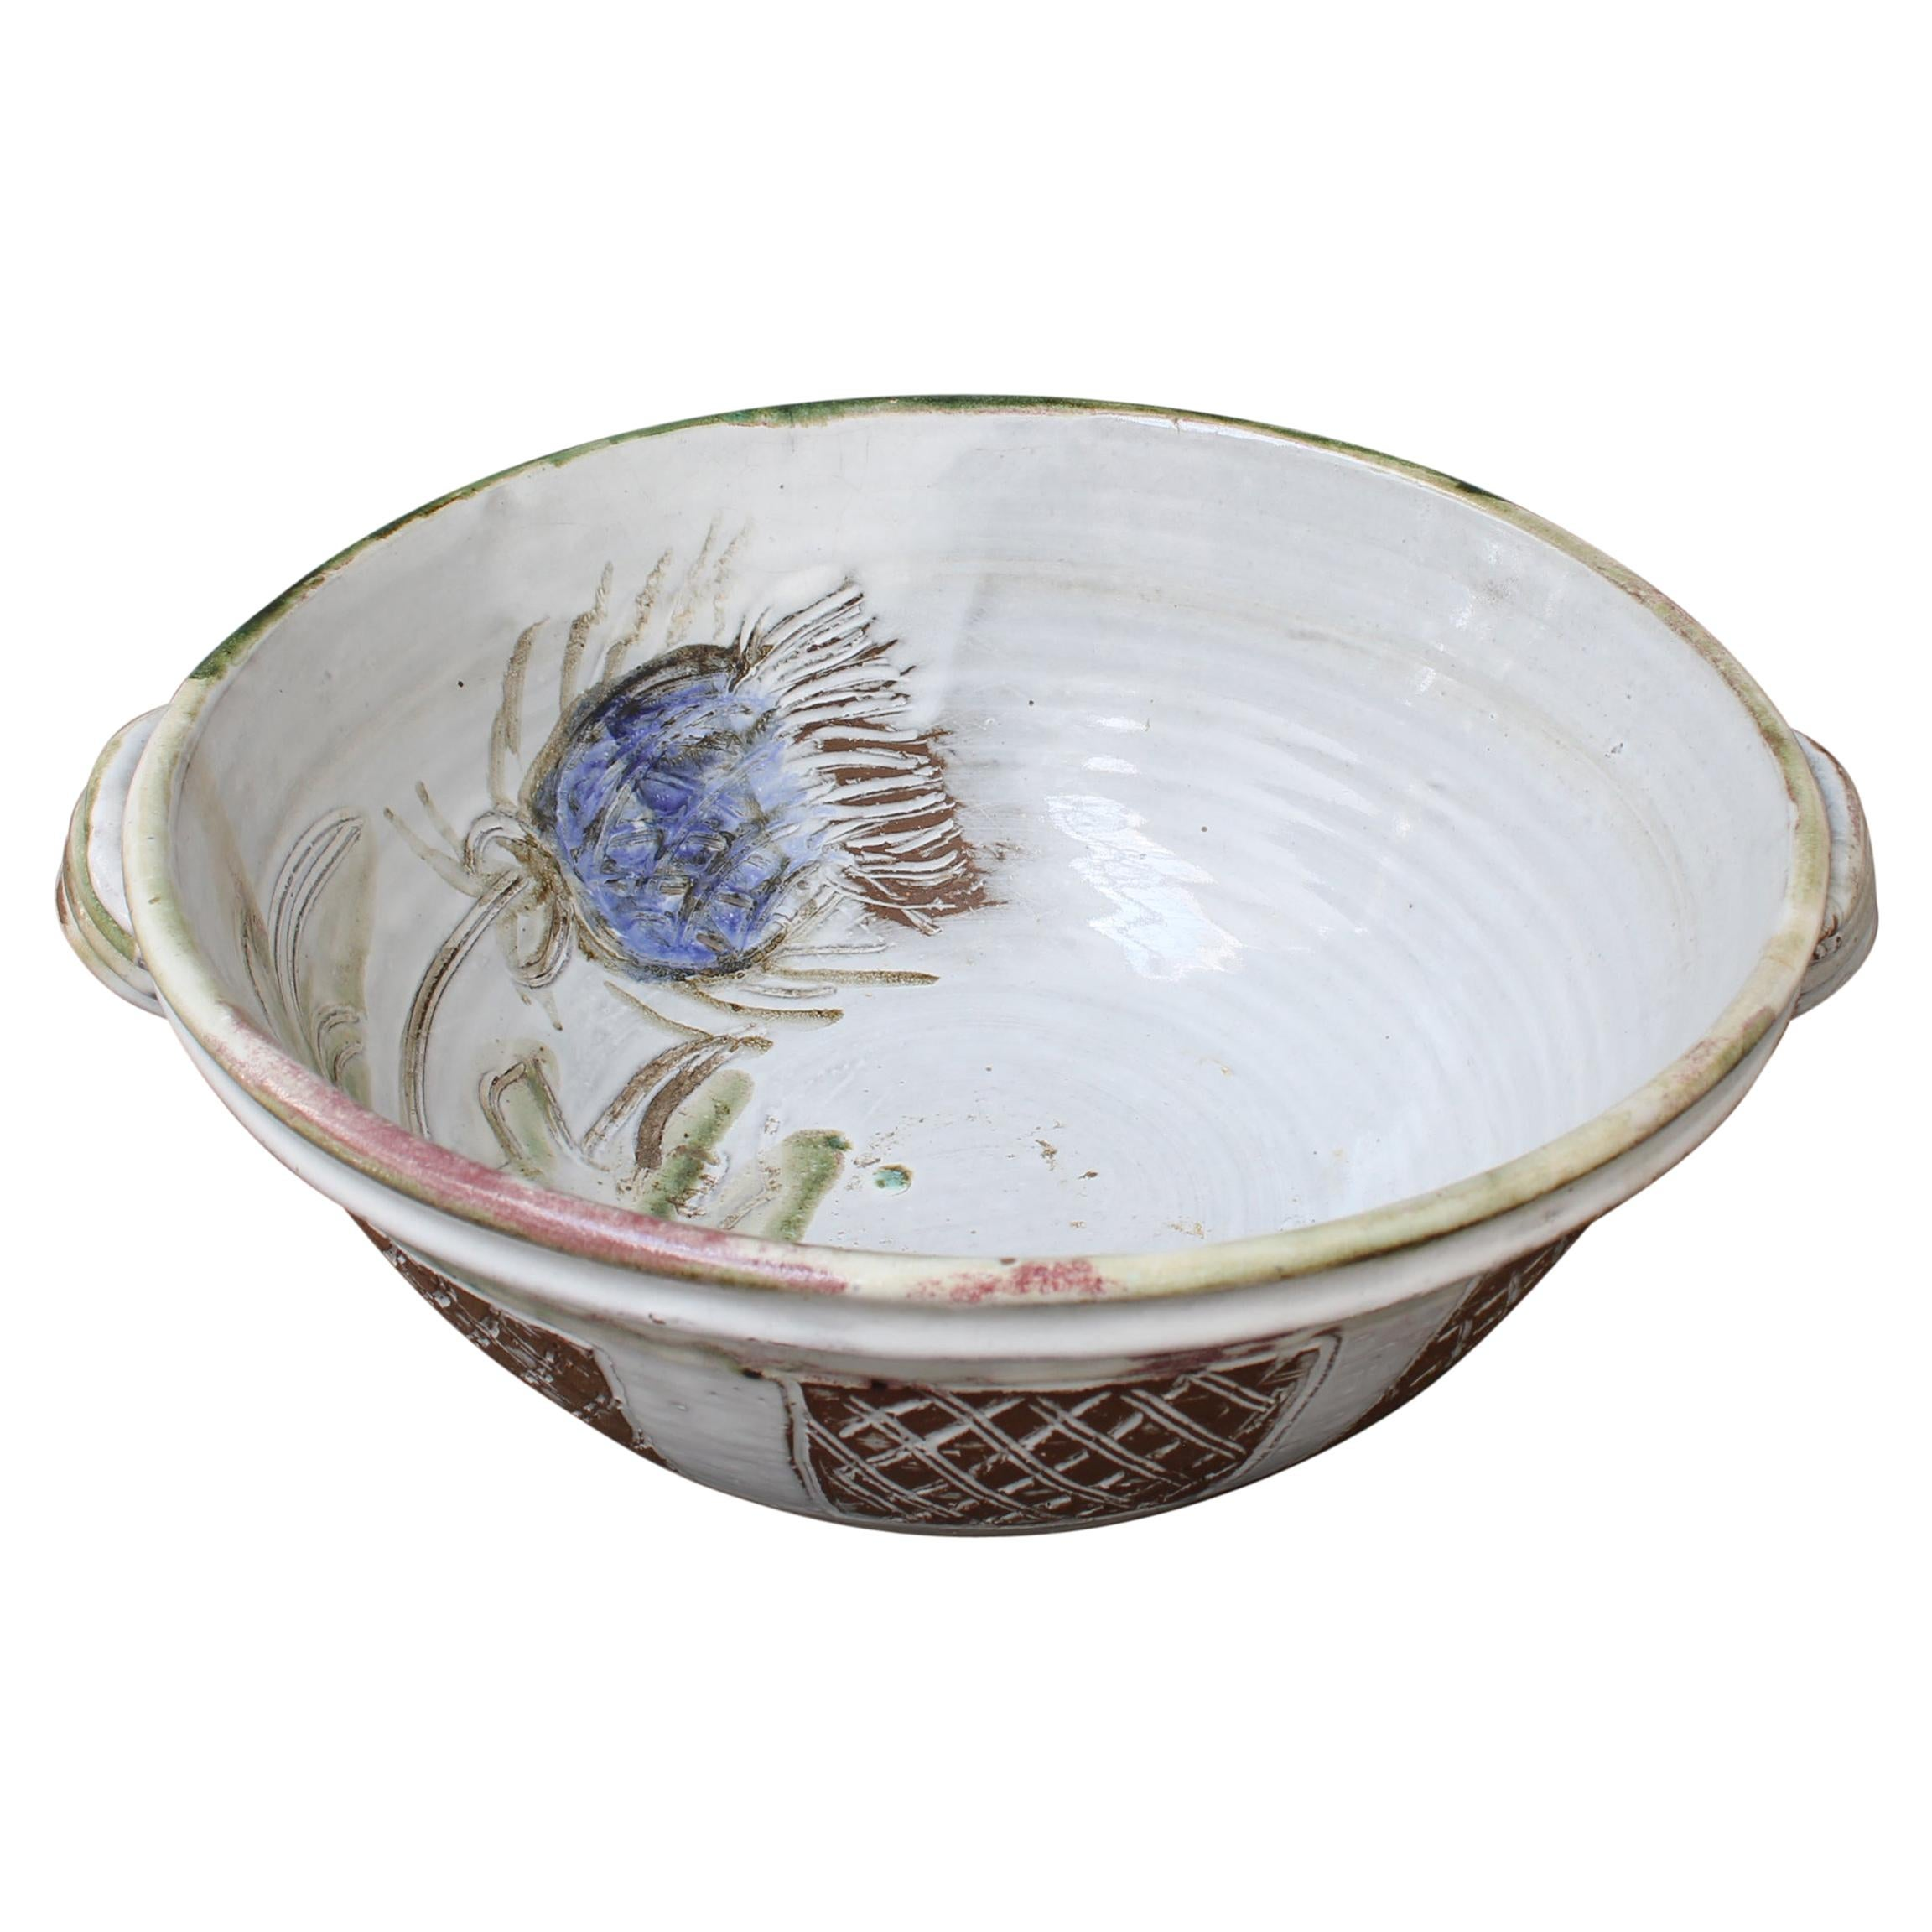 Vintage French Decorative Fruit Bowl by Albert Thiry 'circa 1960s'